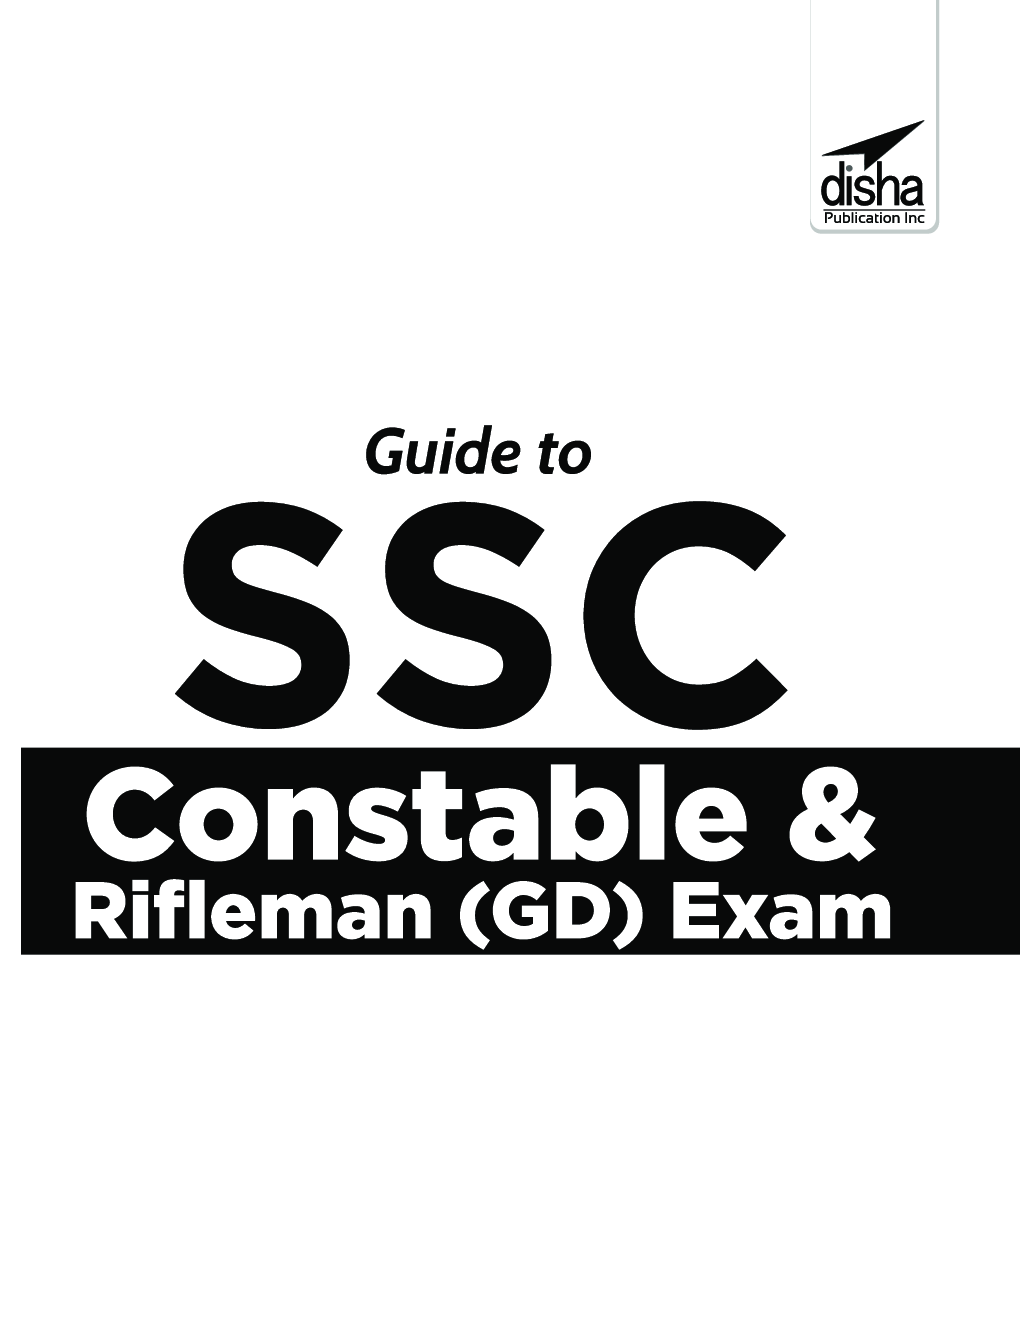 Guide To SSC Constable & Rifleman (GD) Exam 2nd Edition   - Page 2